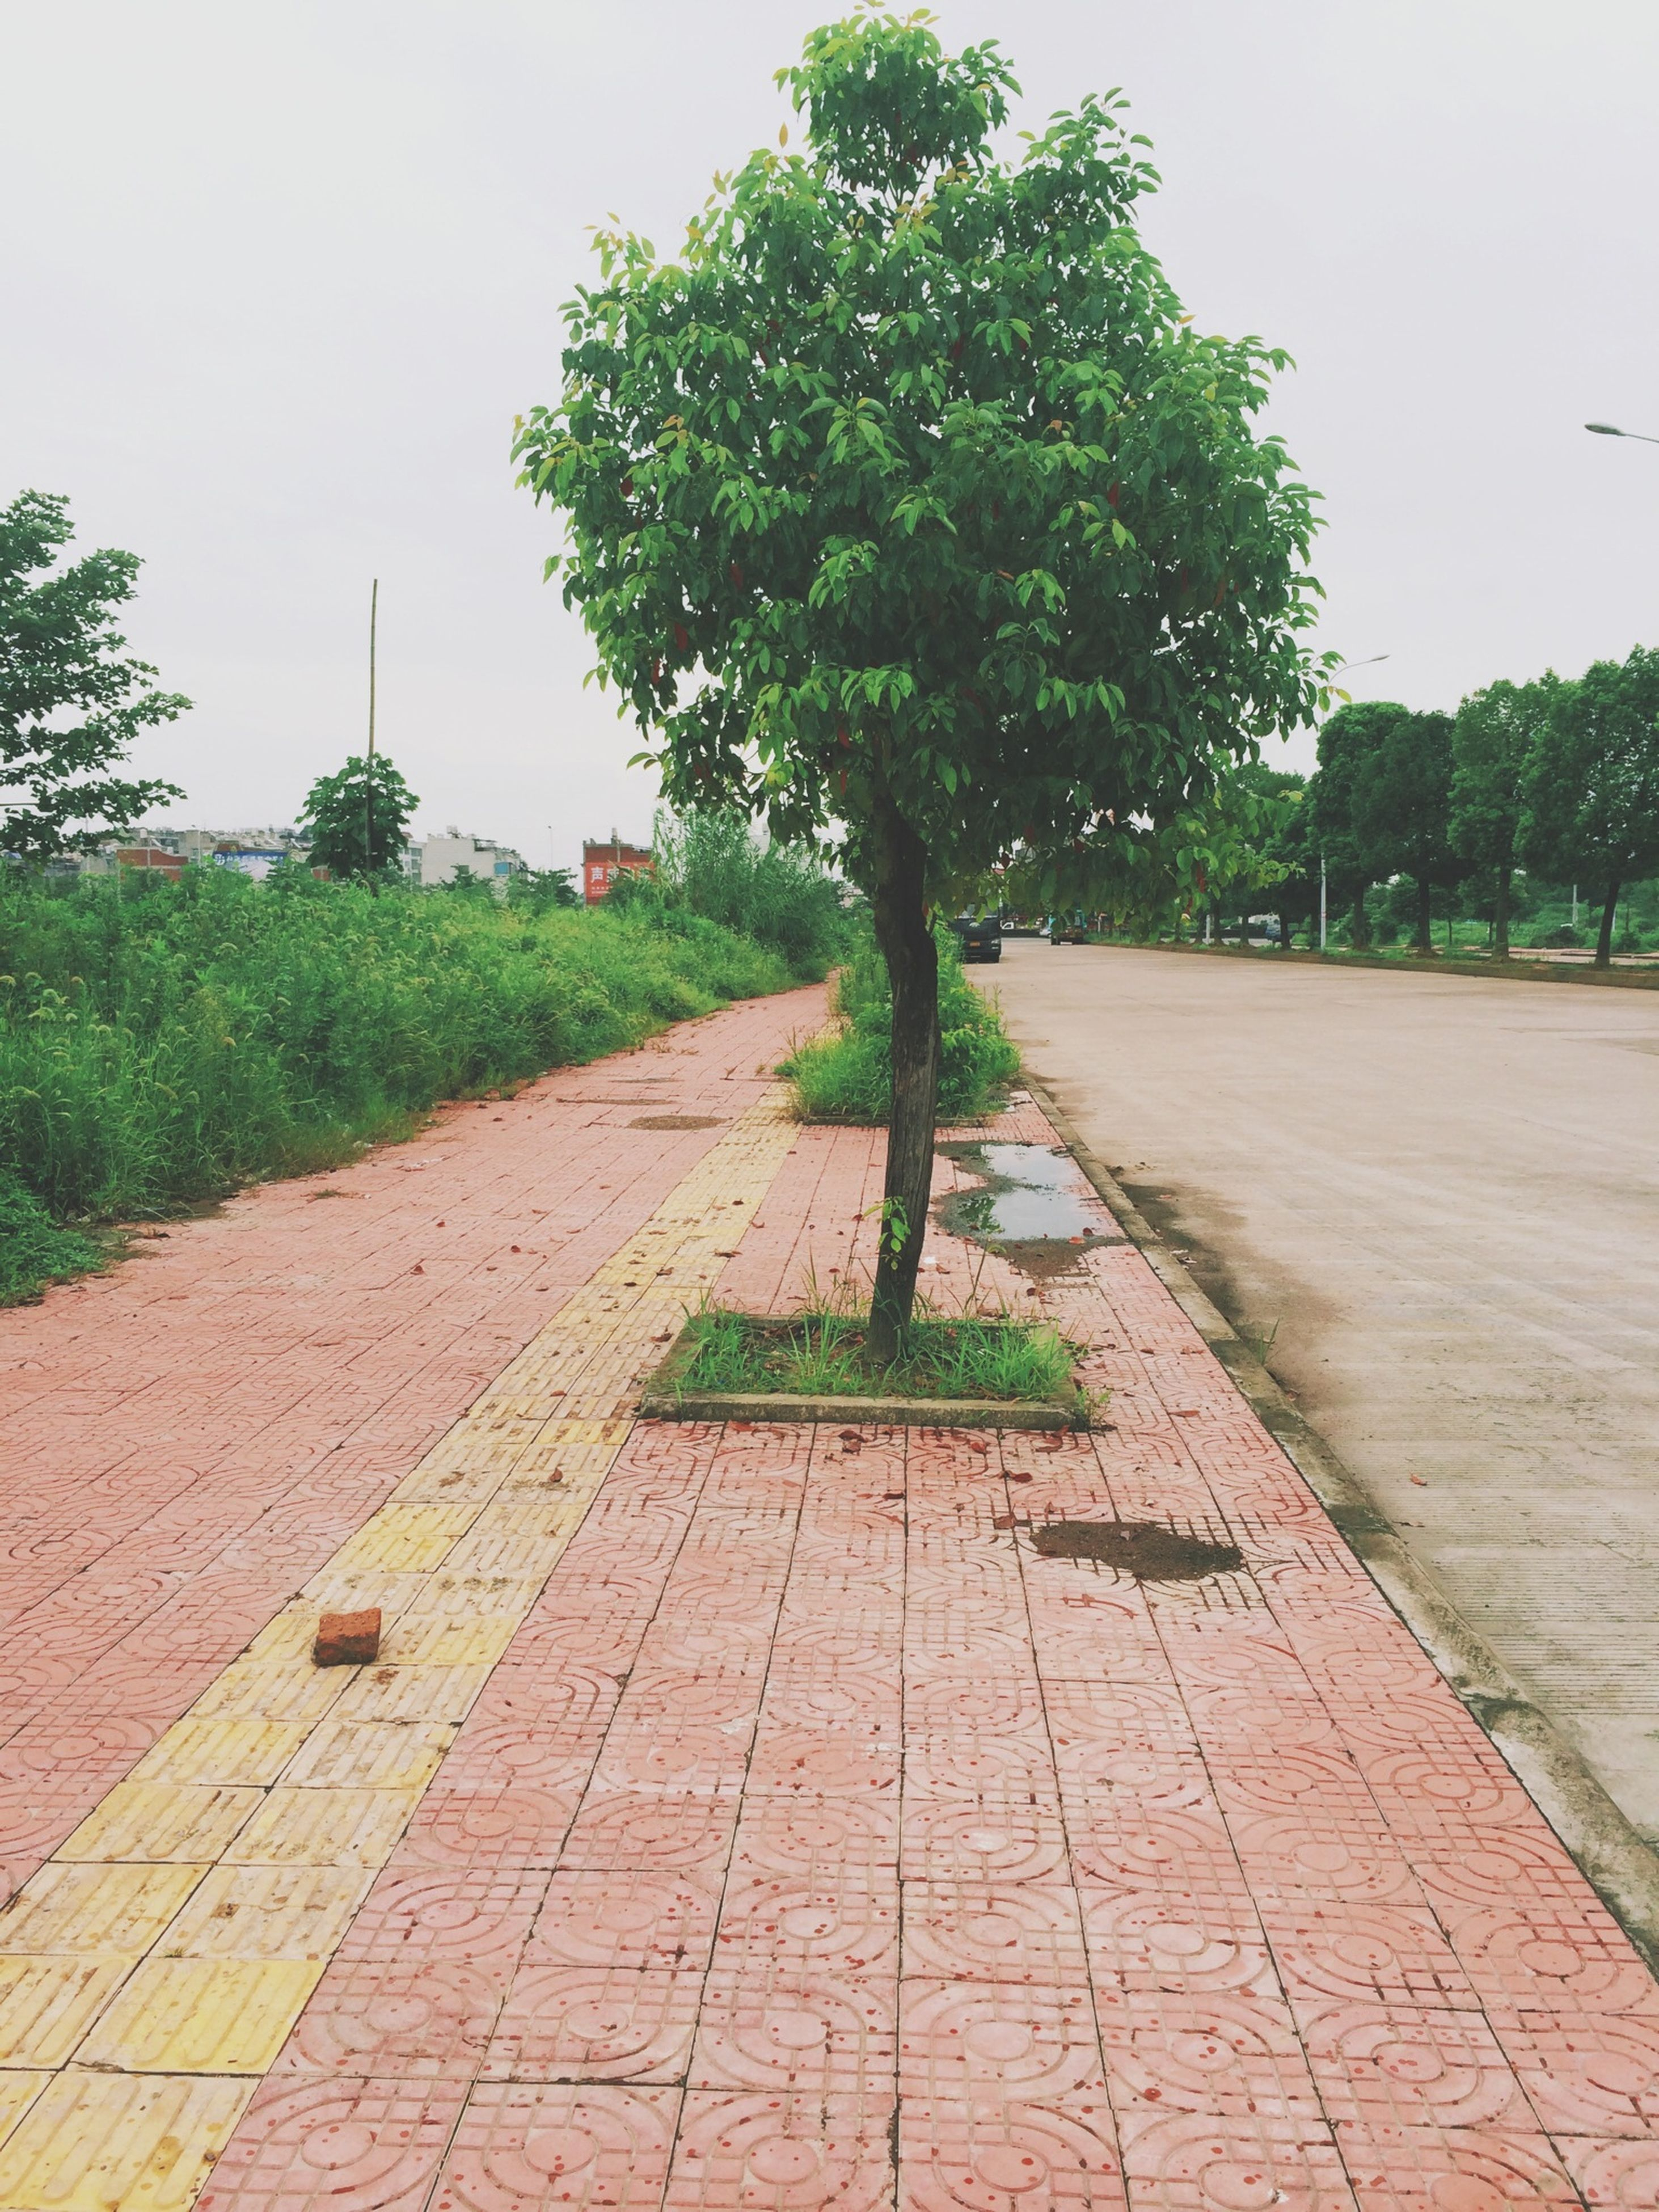 tree, the way forward, footpath, built structure, building exterior, cobblestone, paving stone, street, clear sky, architecture, road, growth, sky, diminishing perspective, walkway, day, sidewalk, empty, street light, outdoors